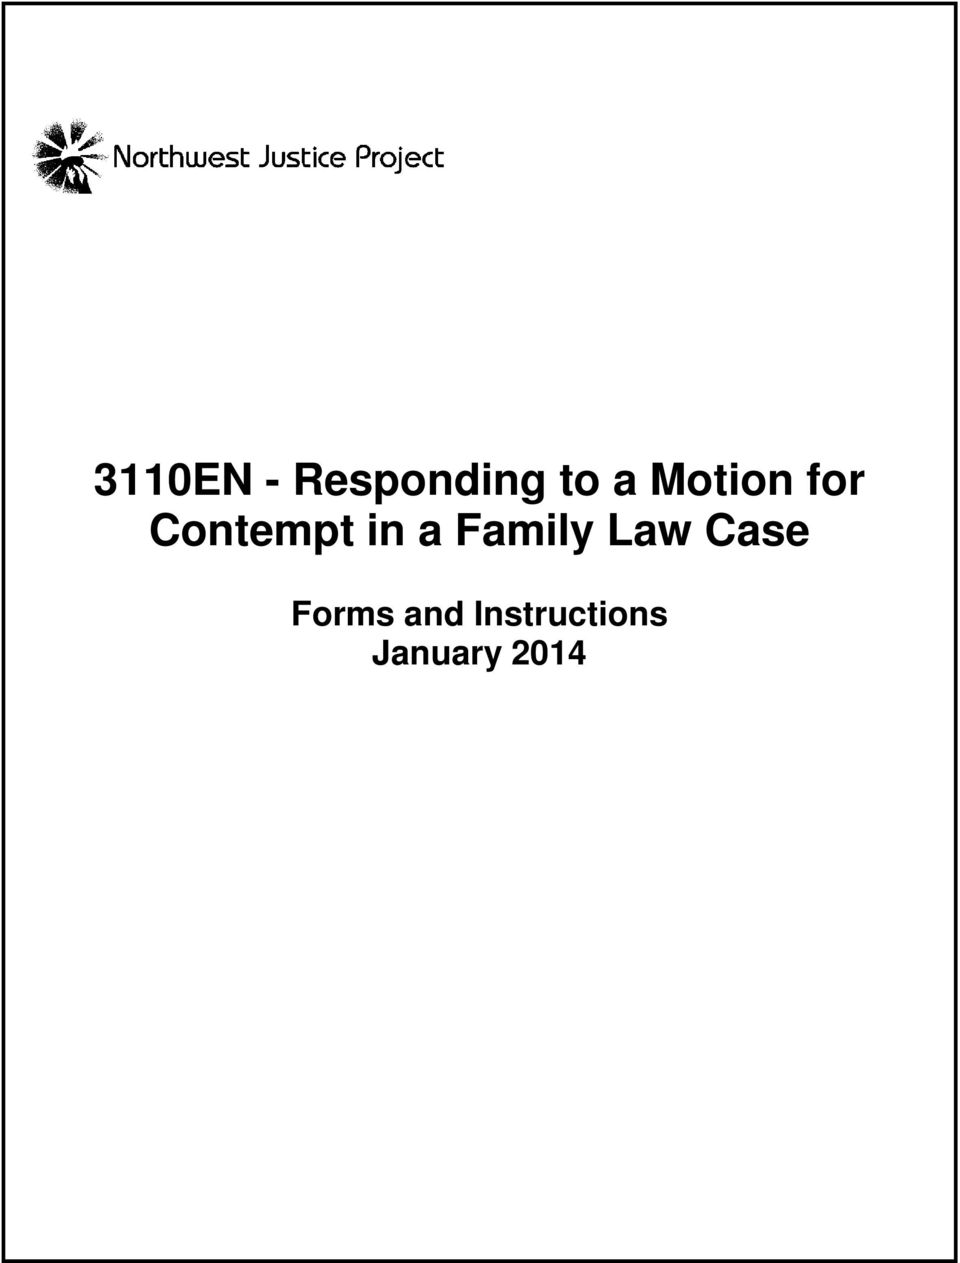 3110EN - Responding to a Motion for Contempt in a Family Law